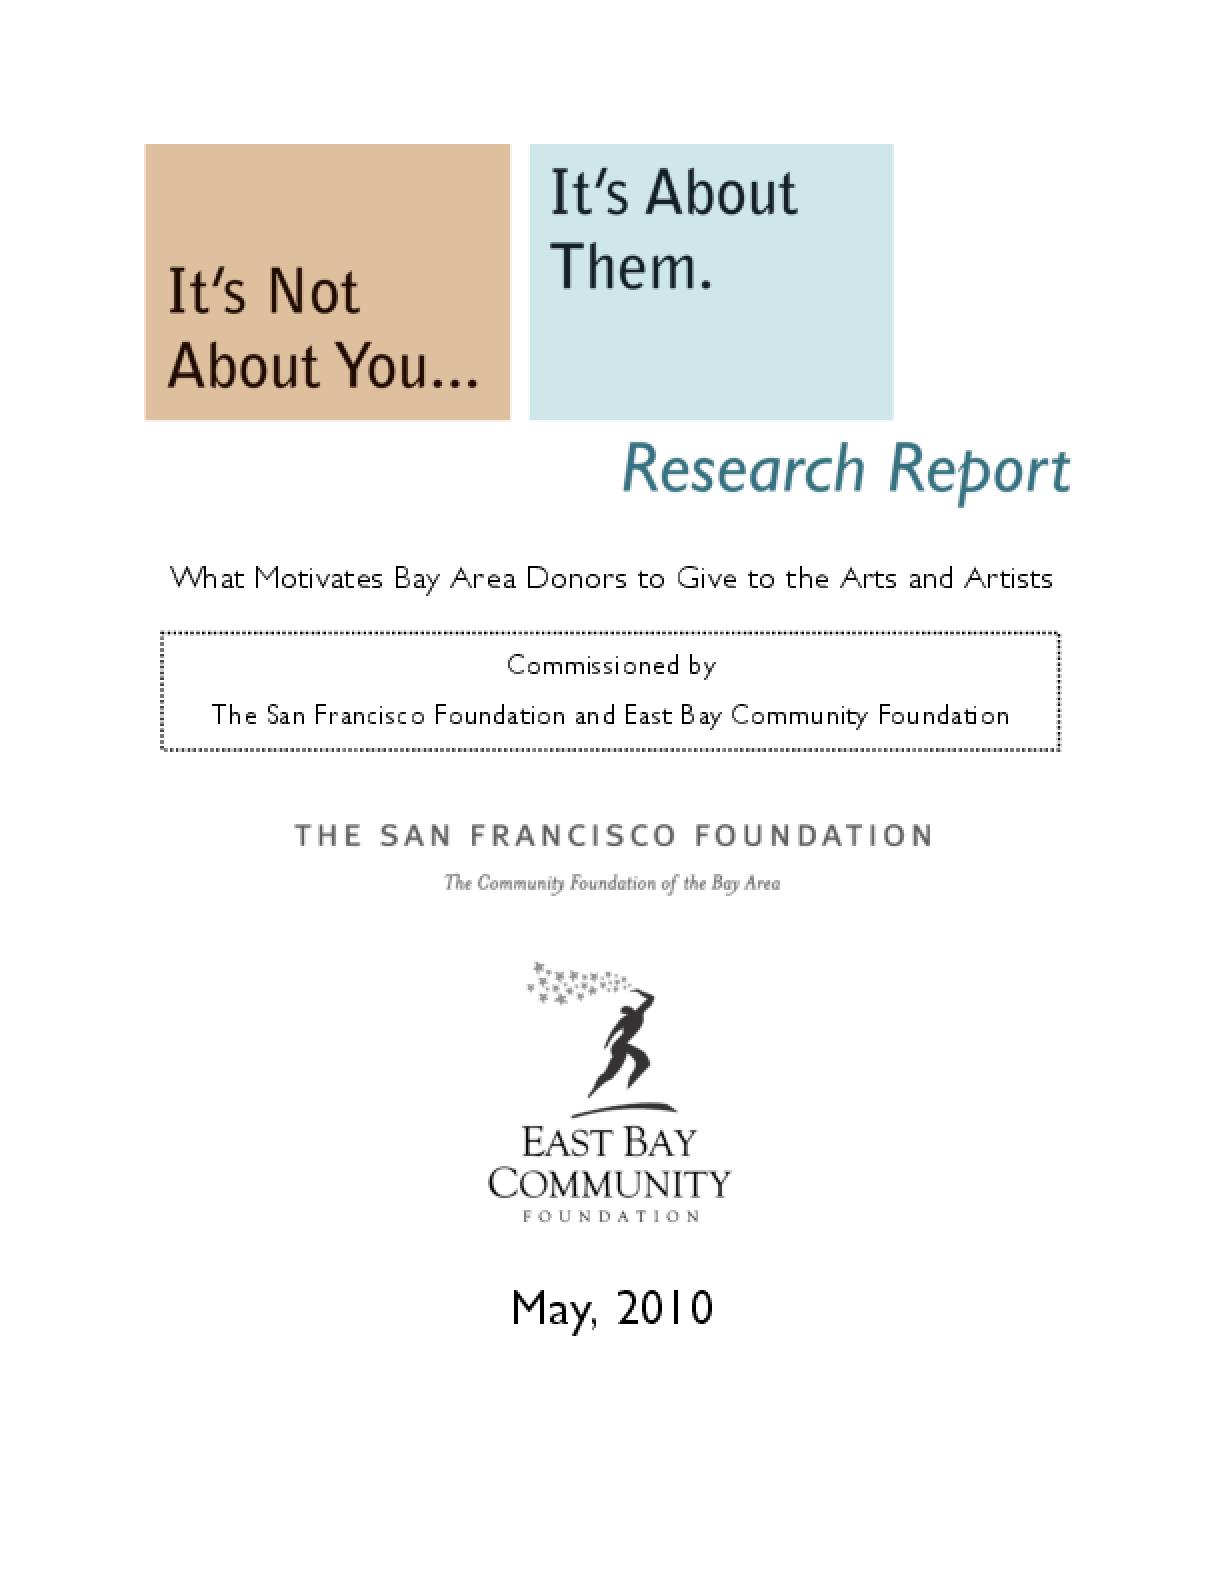 It's Not About You... It's About Them: A Research Report on What Motivates Bay Area Donors to Give to the Arts and Artists